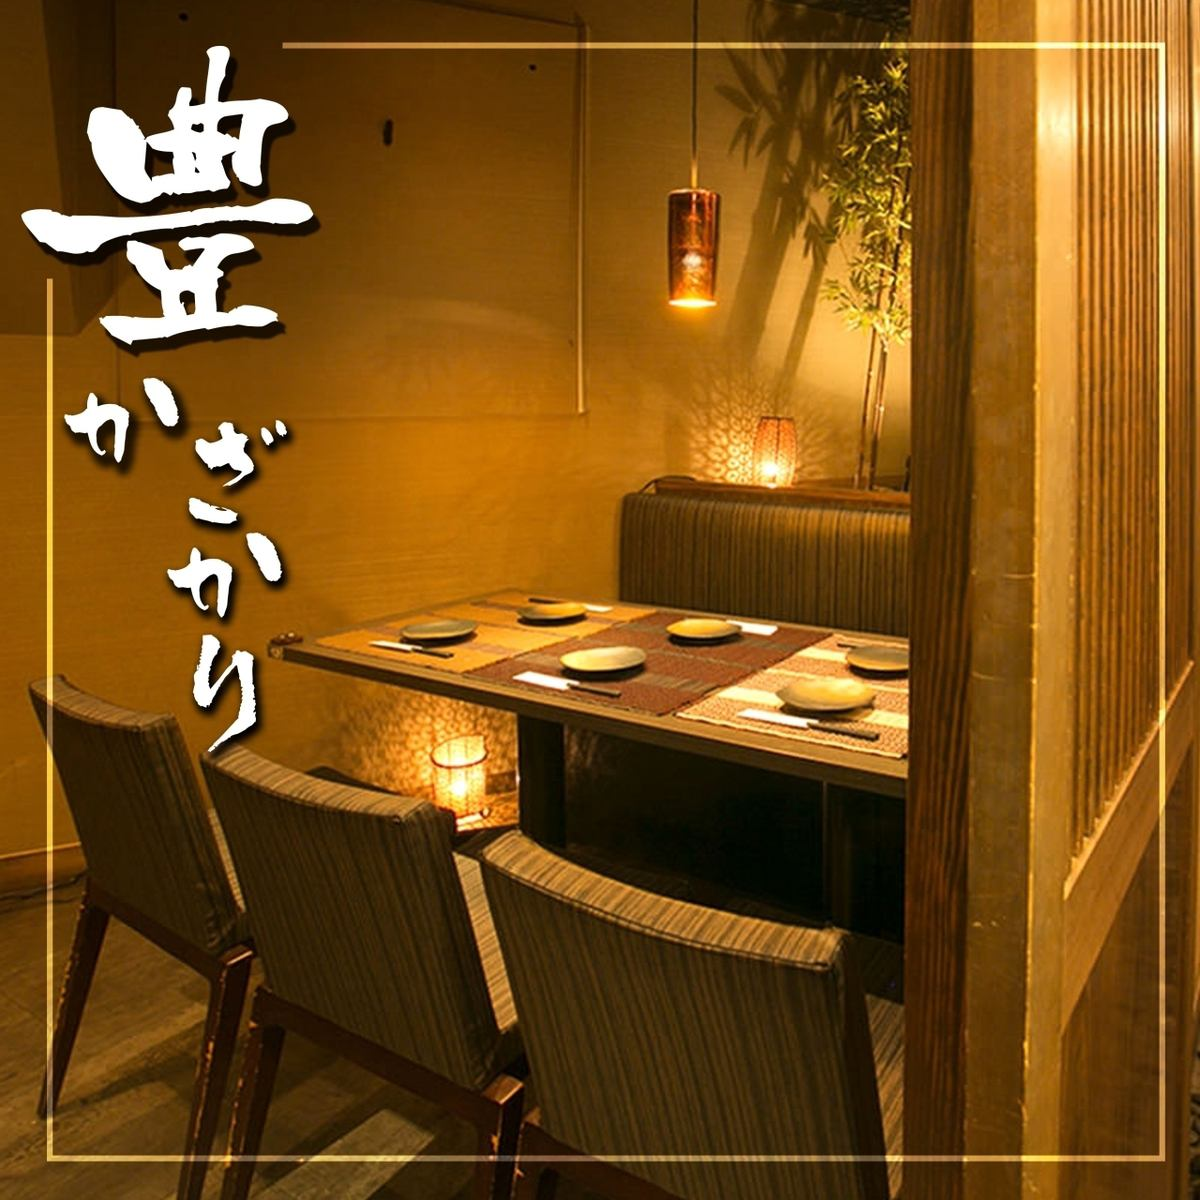 【Hideout private room space】 Prepared private room according to needs ★